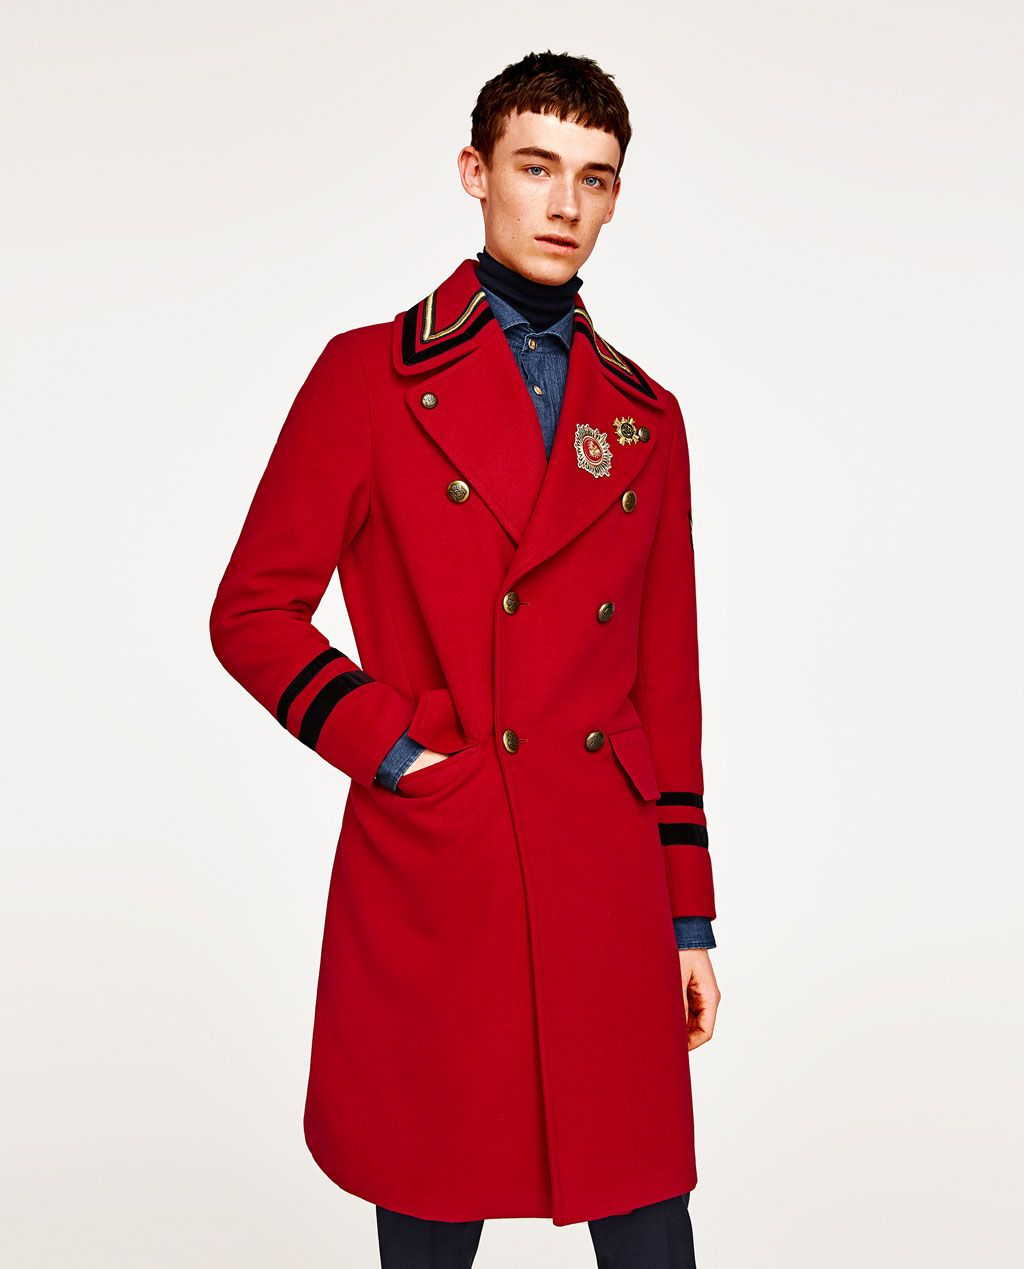 44f35c4d Image 2 of RED MILITARY COAT from Zara | men fashion in 2019 ...